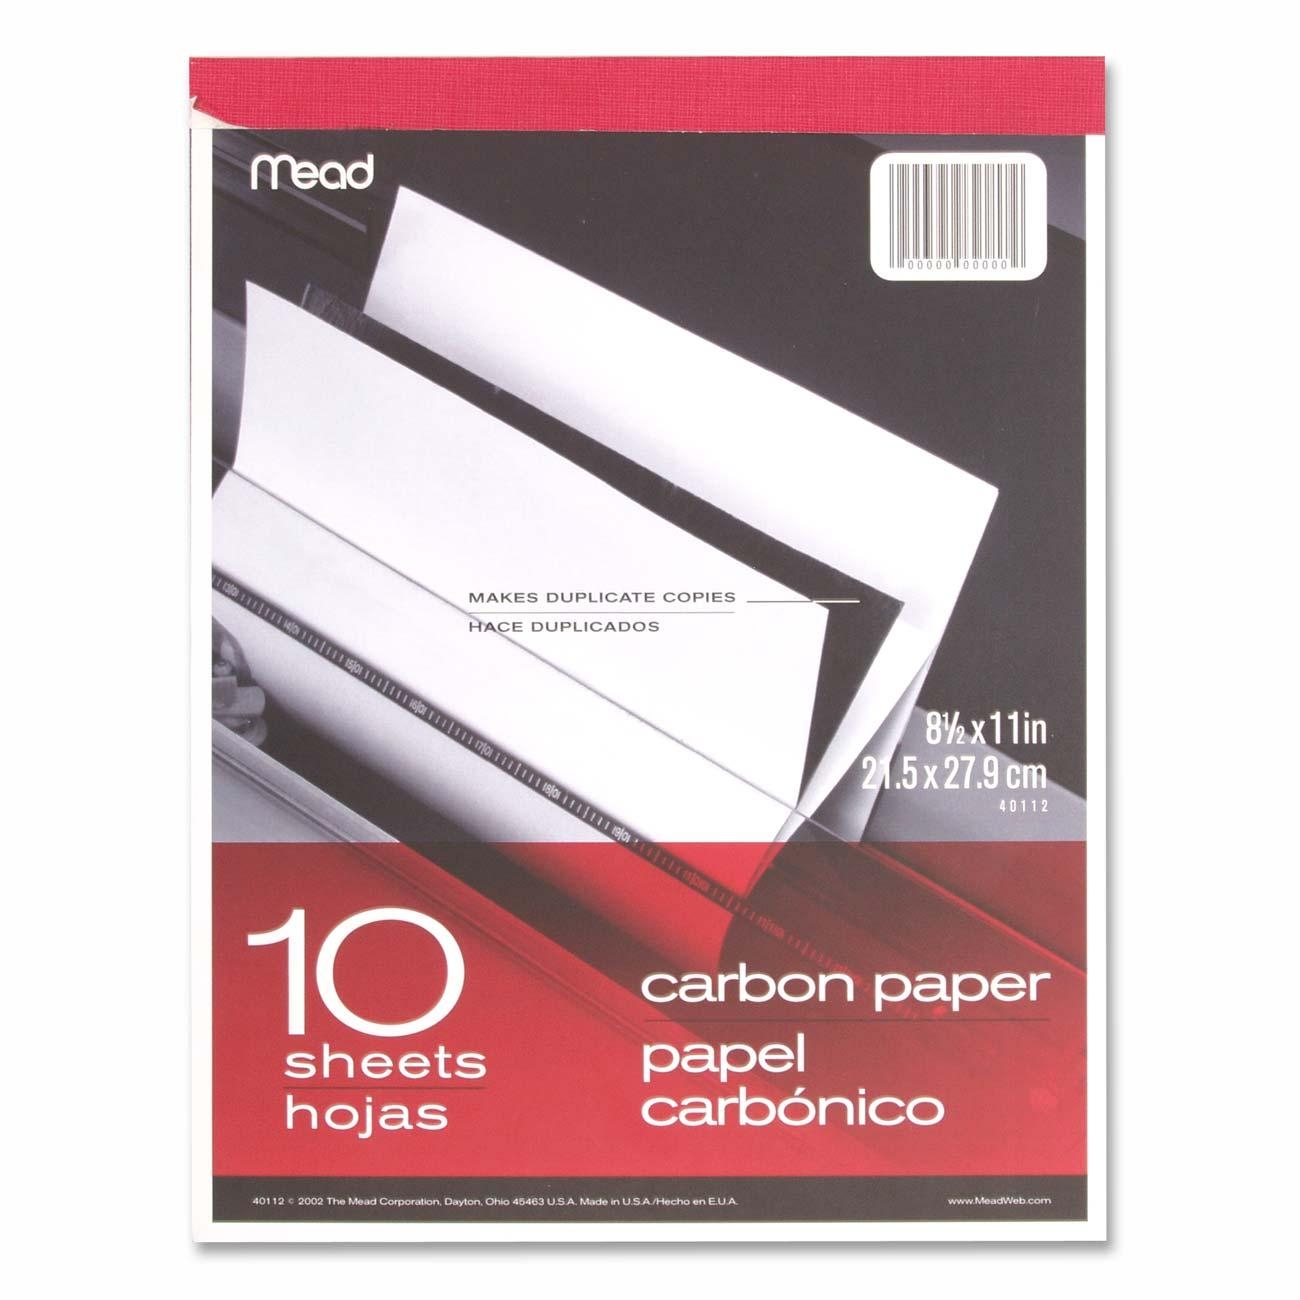 Carbon Paper Tablet by ACCO Brands Corporation